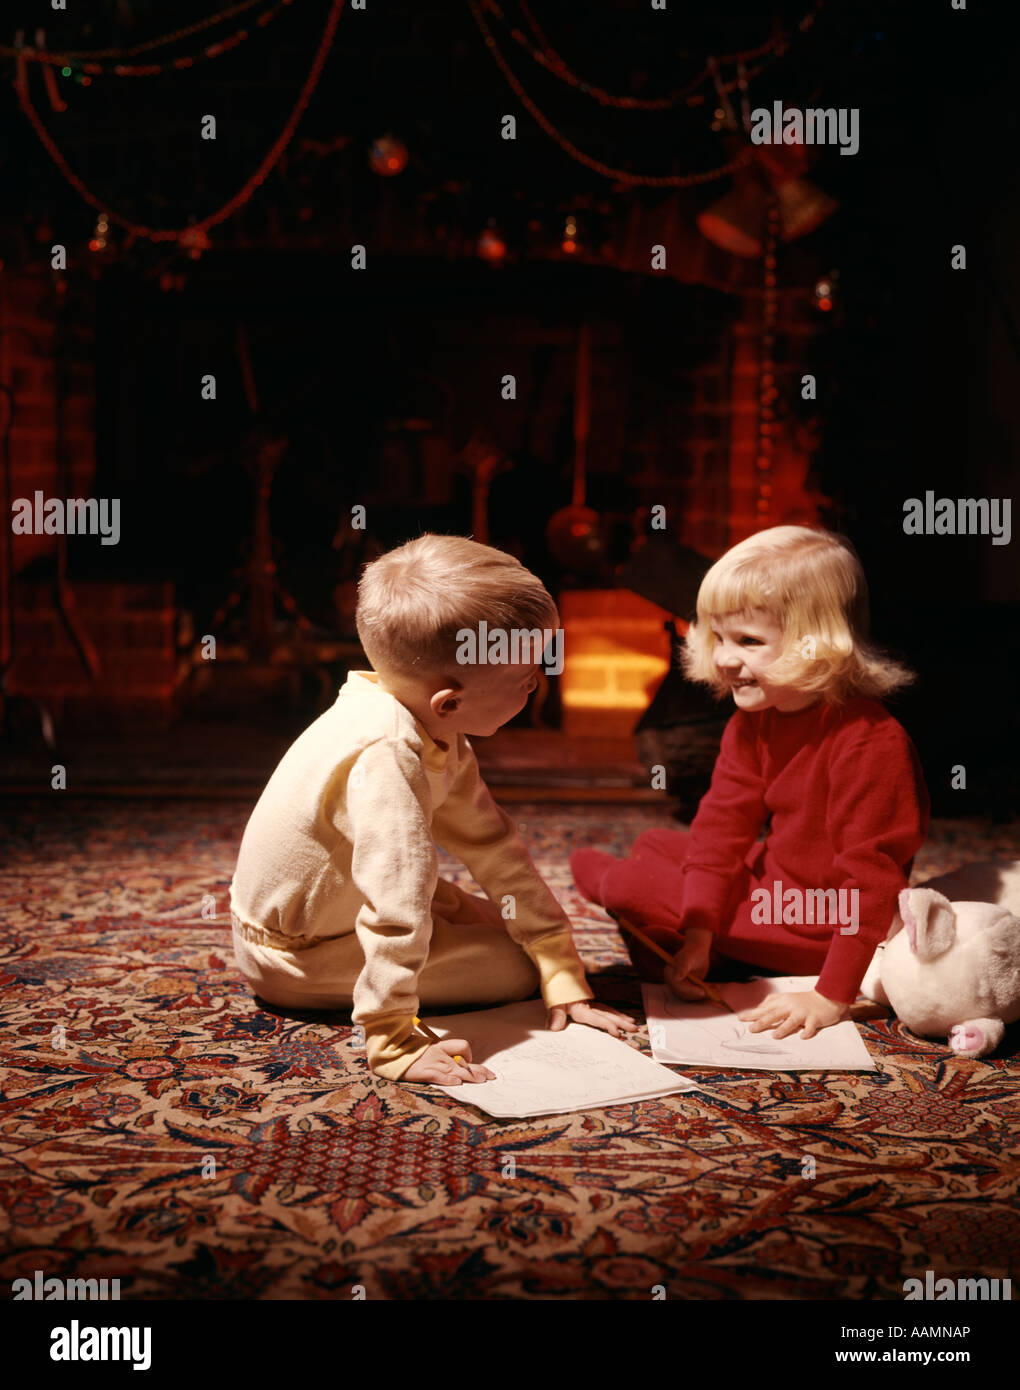 1940s 1950s LITTLE BOY AND GIRL IN PAJAMAS SMILING TOGETHER ON RUG IN FRONT OF A CHRISTMAS FIRE IN FIREPLACE RETRO - Stock Image